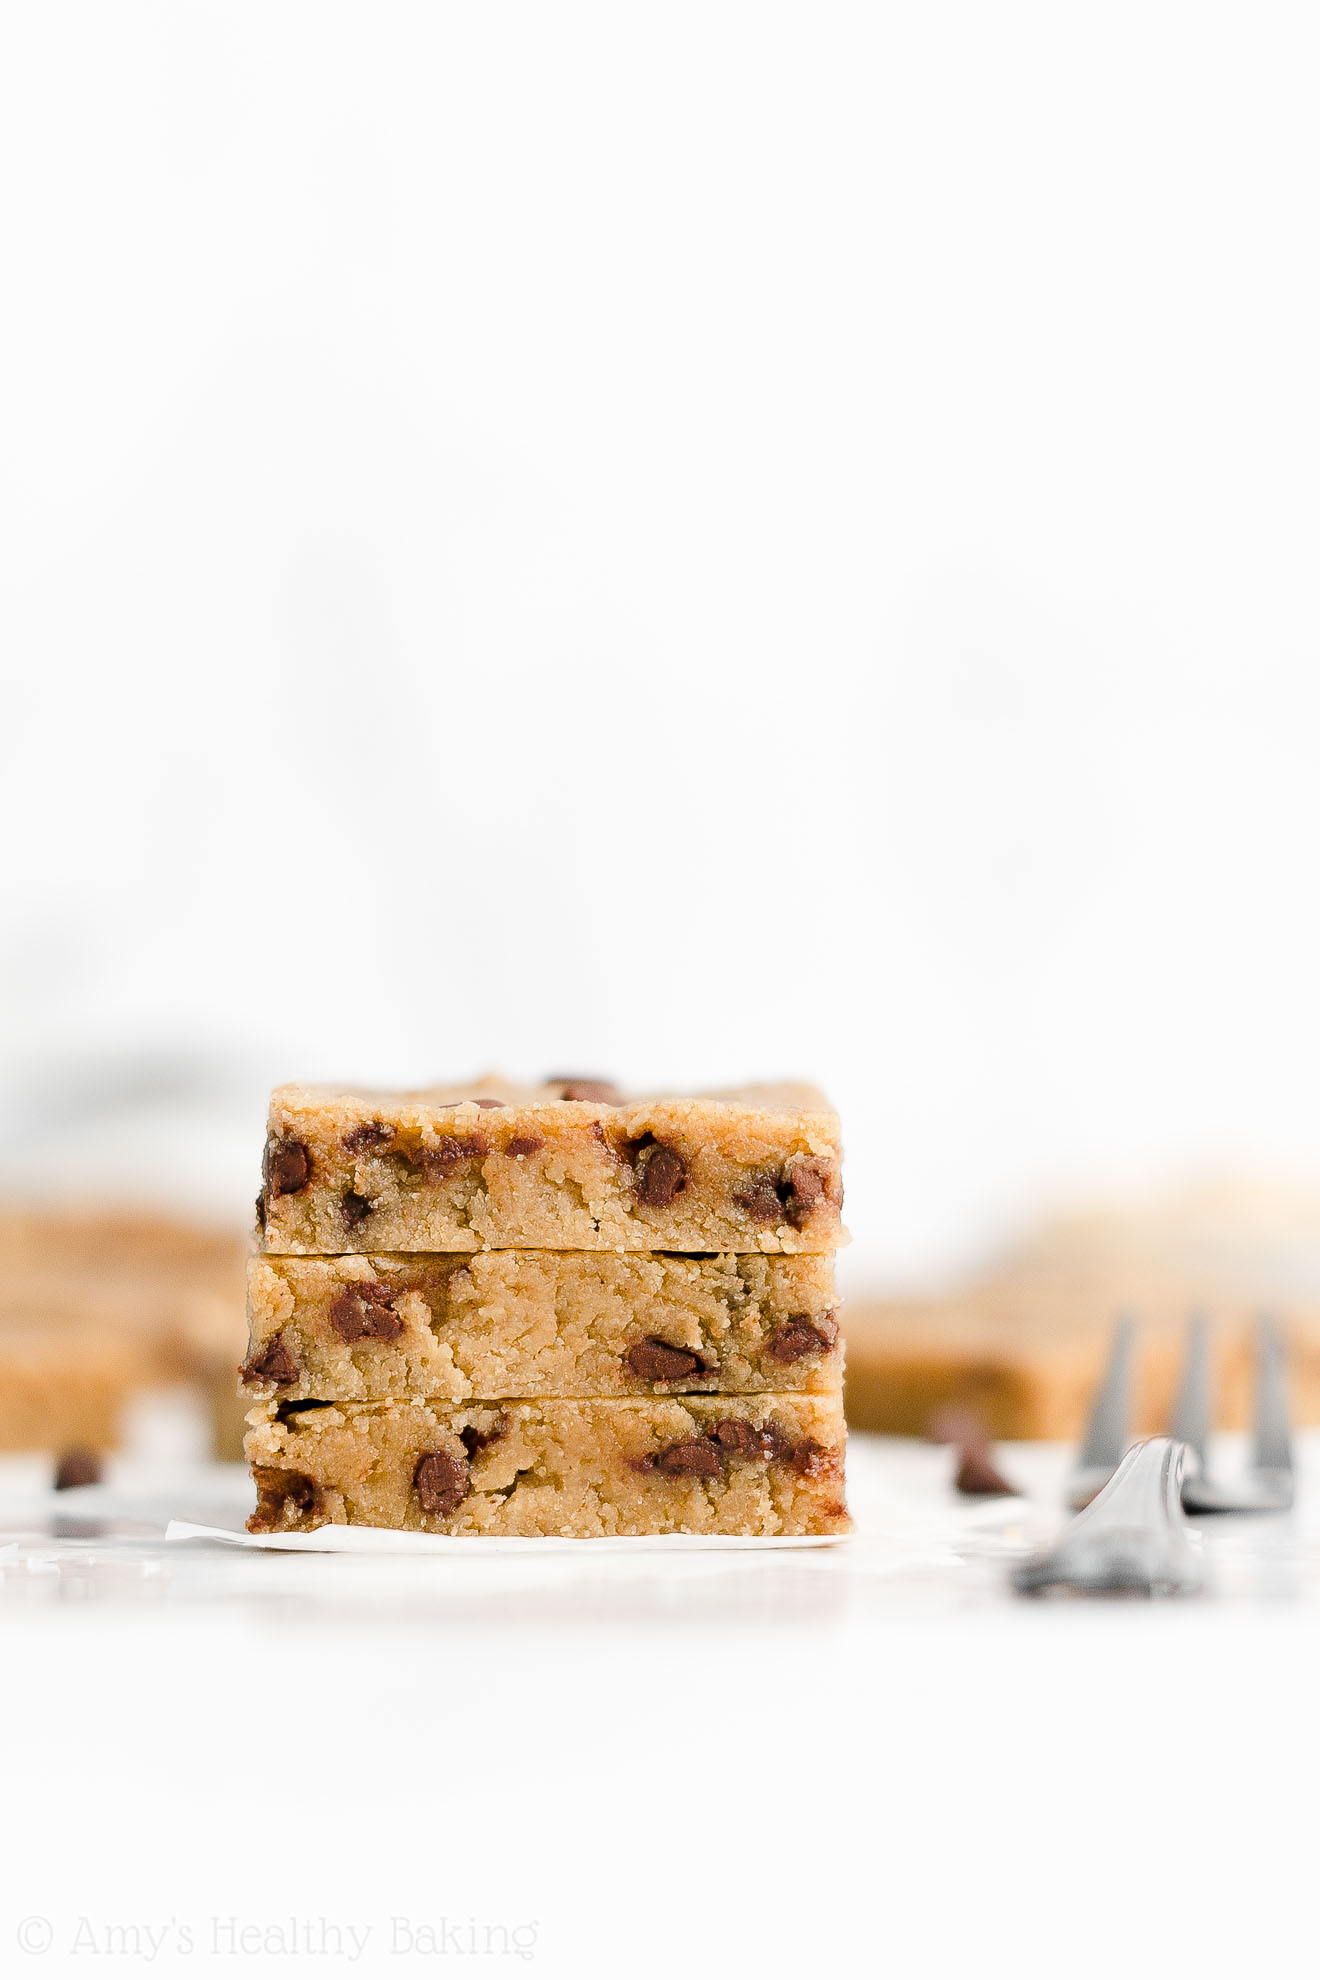 Healthy Vegan Gluten Free Flourless Chocolate Chip Peanut Butter Cookie Bars